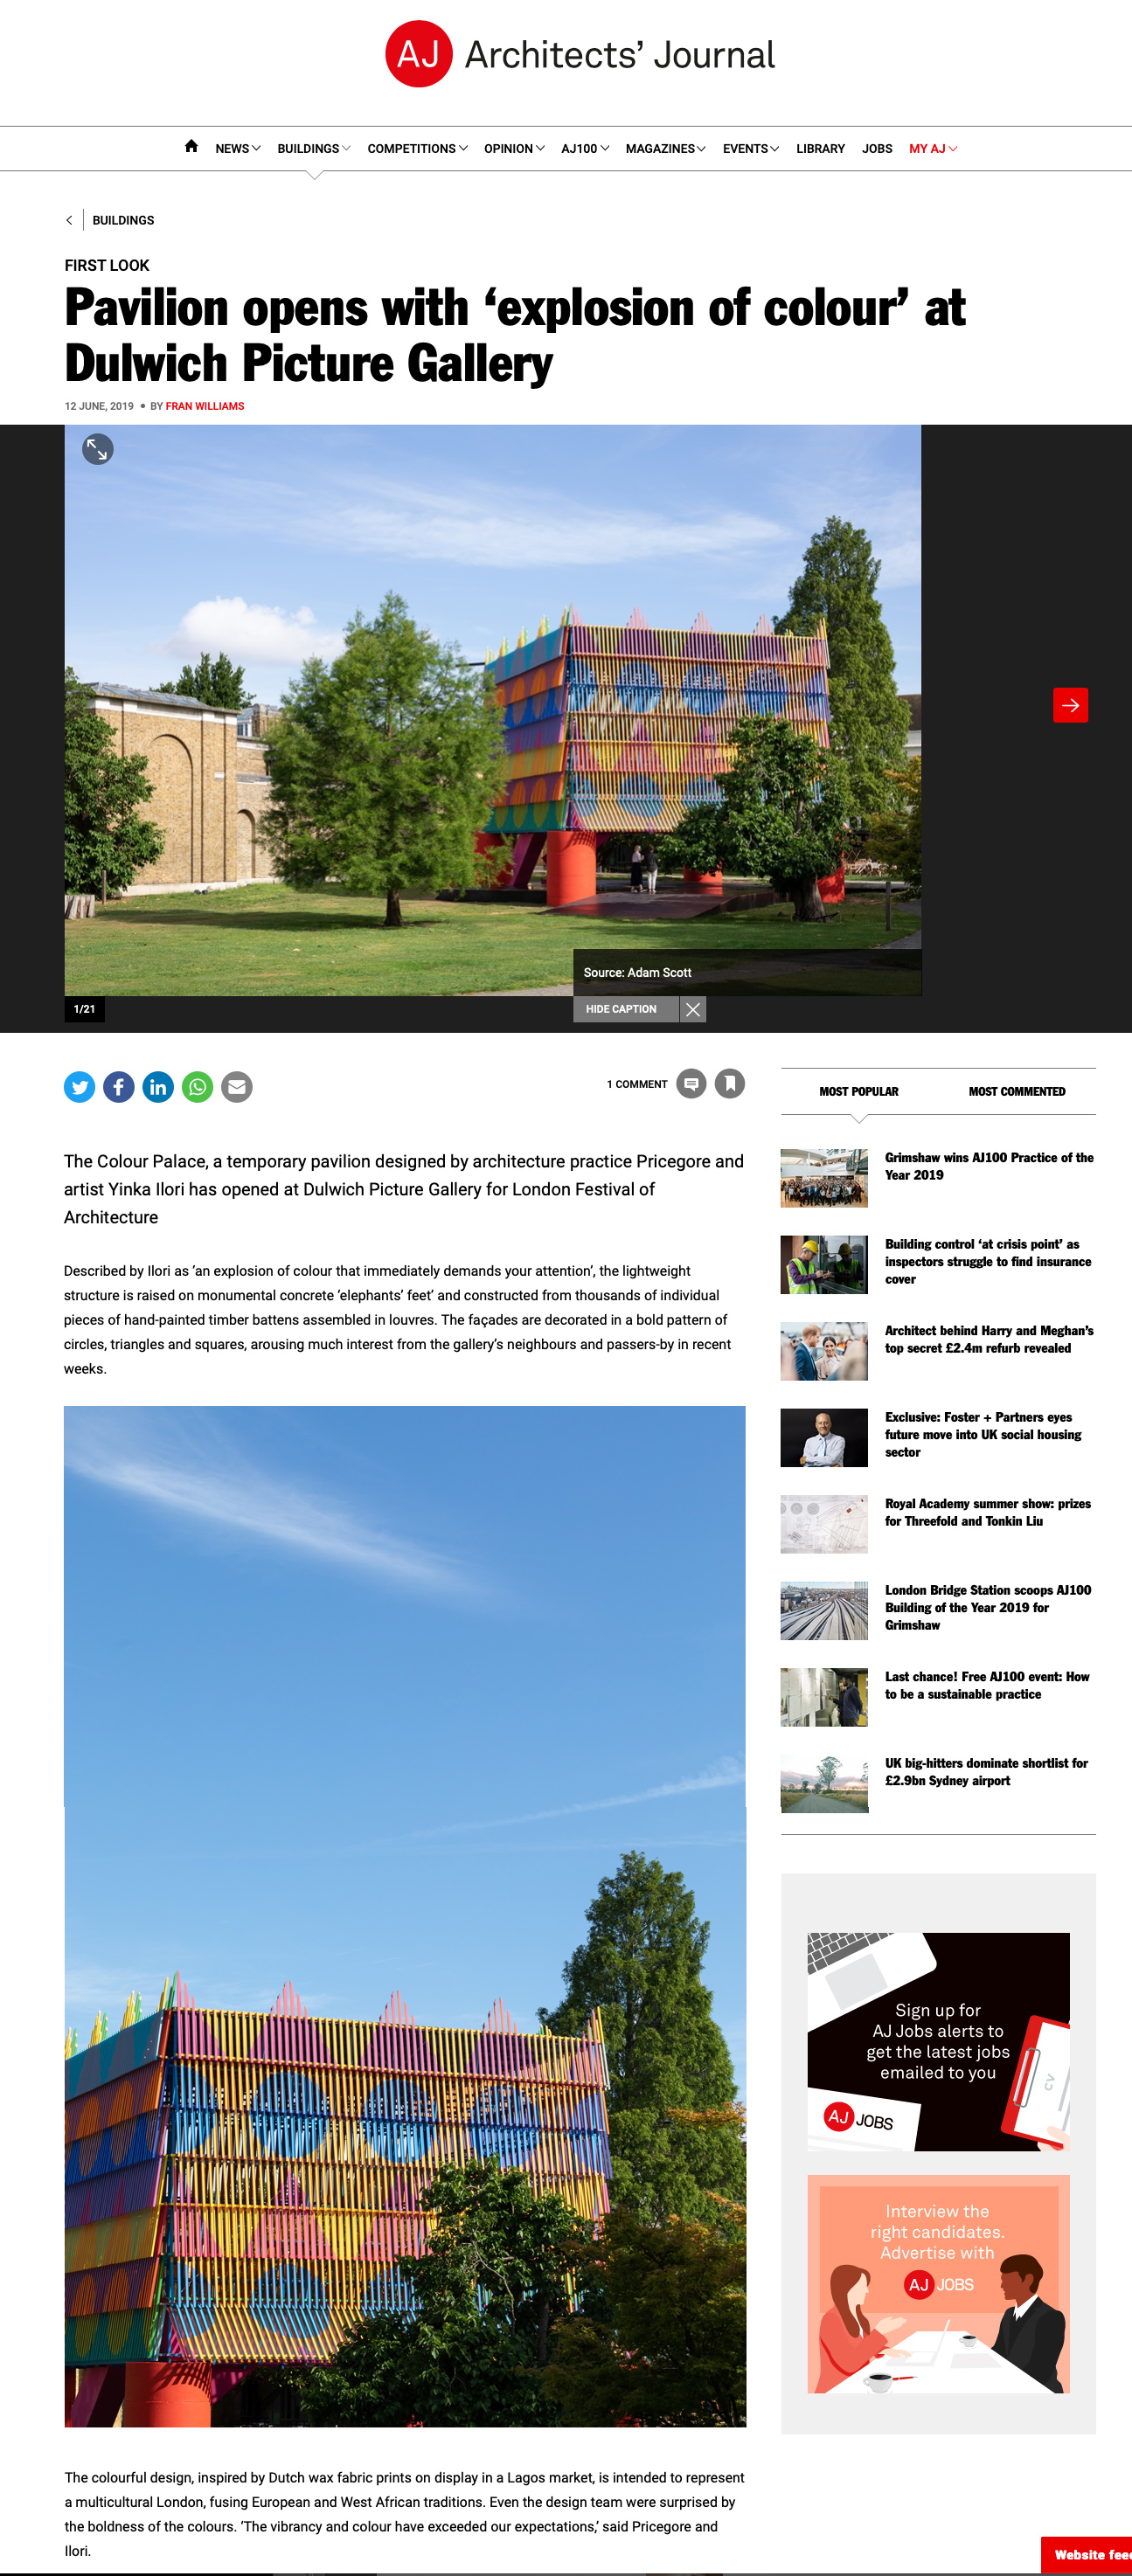 ArchitectsJournal_ColourPalace_DulwichPictureGallery_120619.jpg